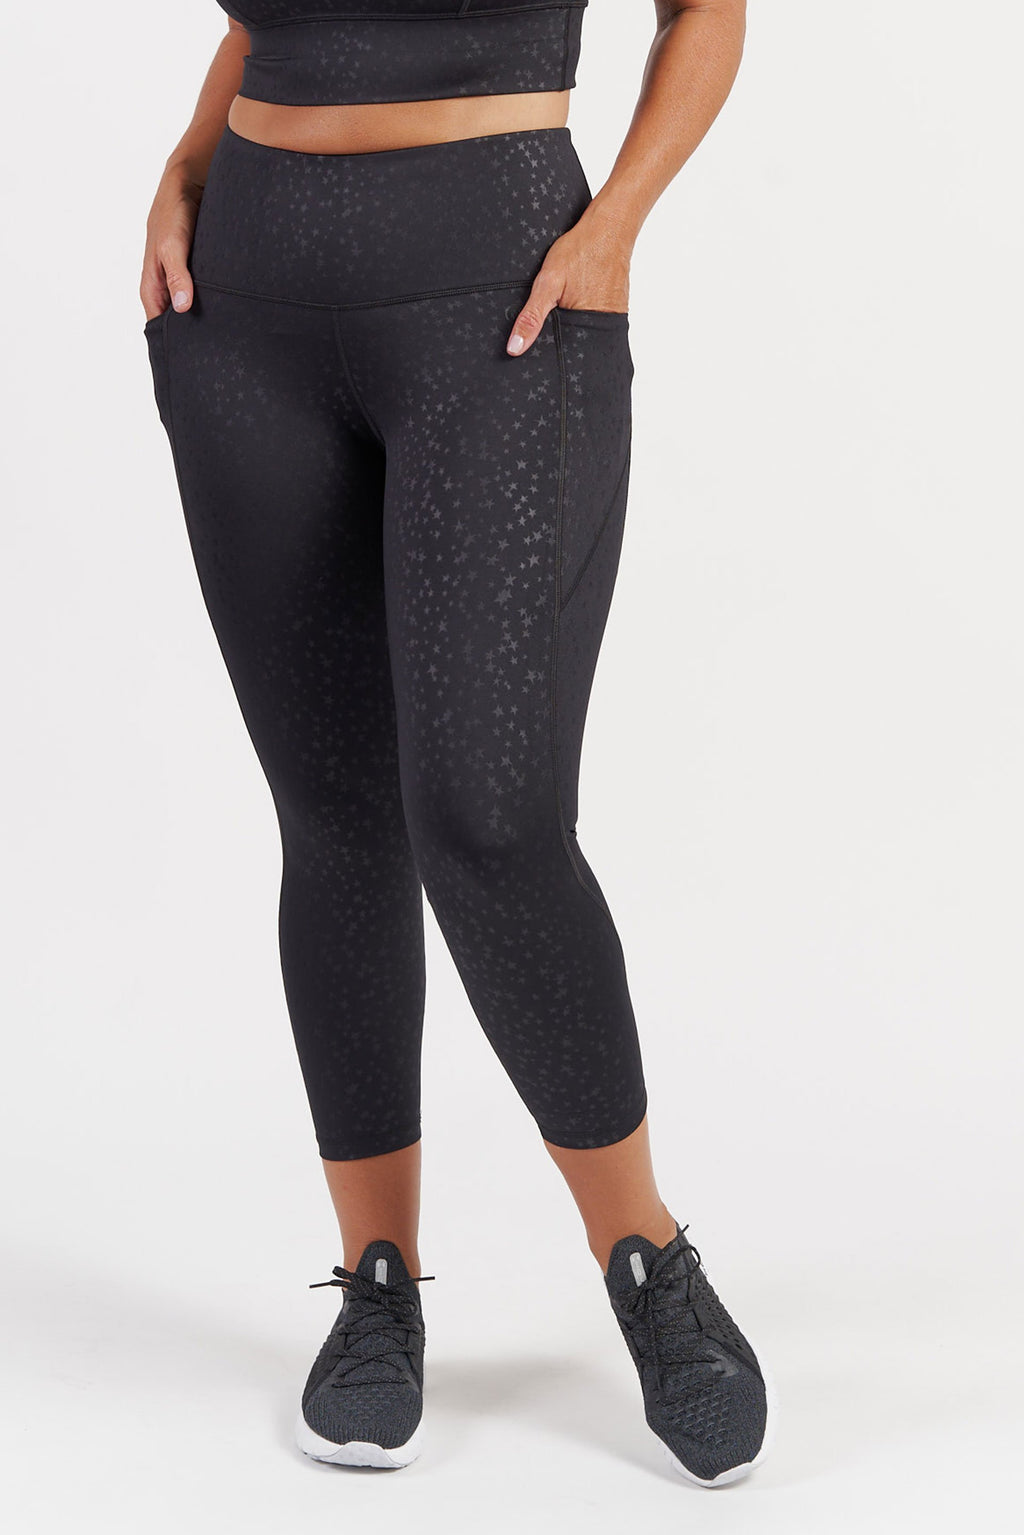 7-8-length-gym-tight-black-star-large-front